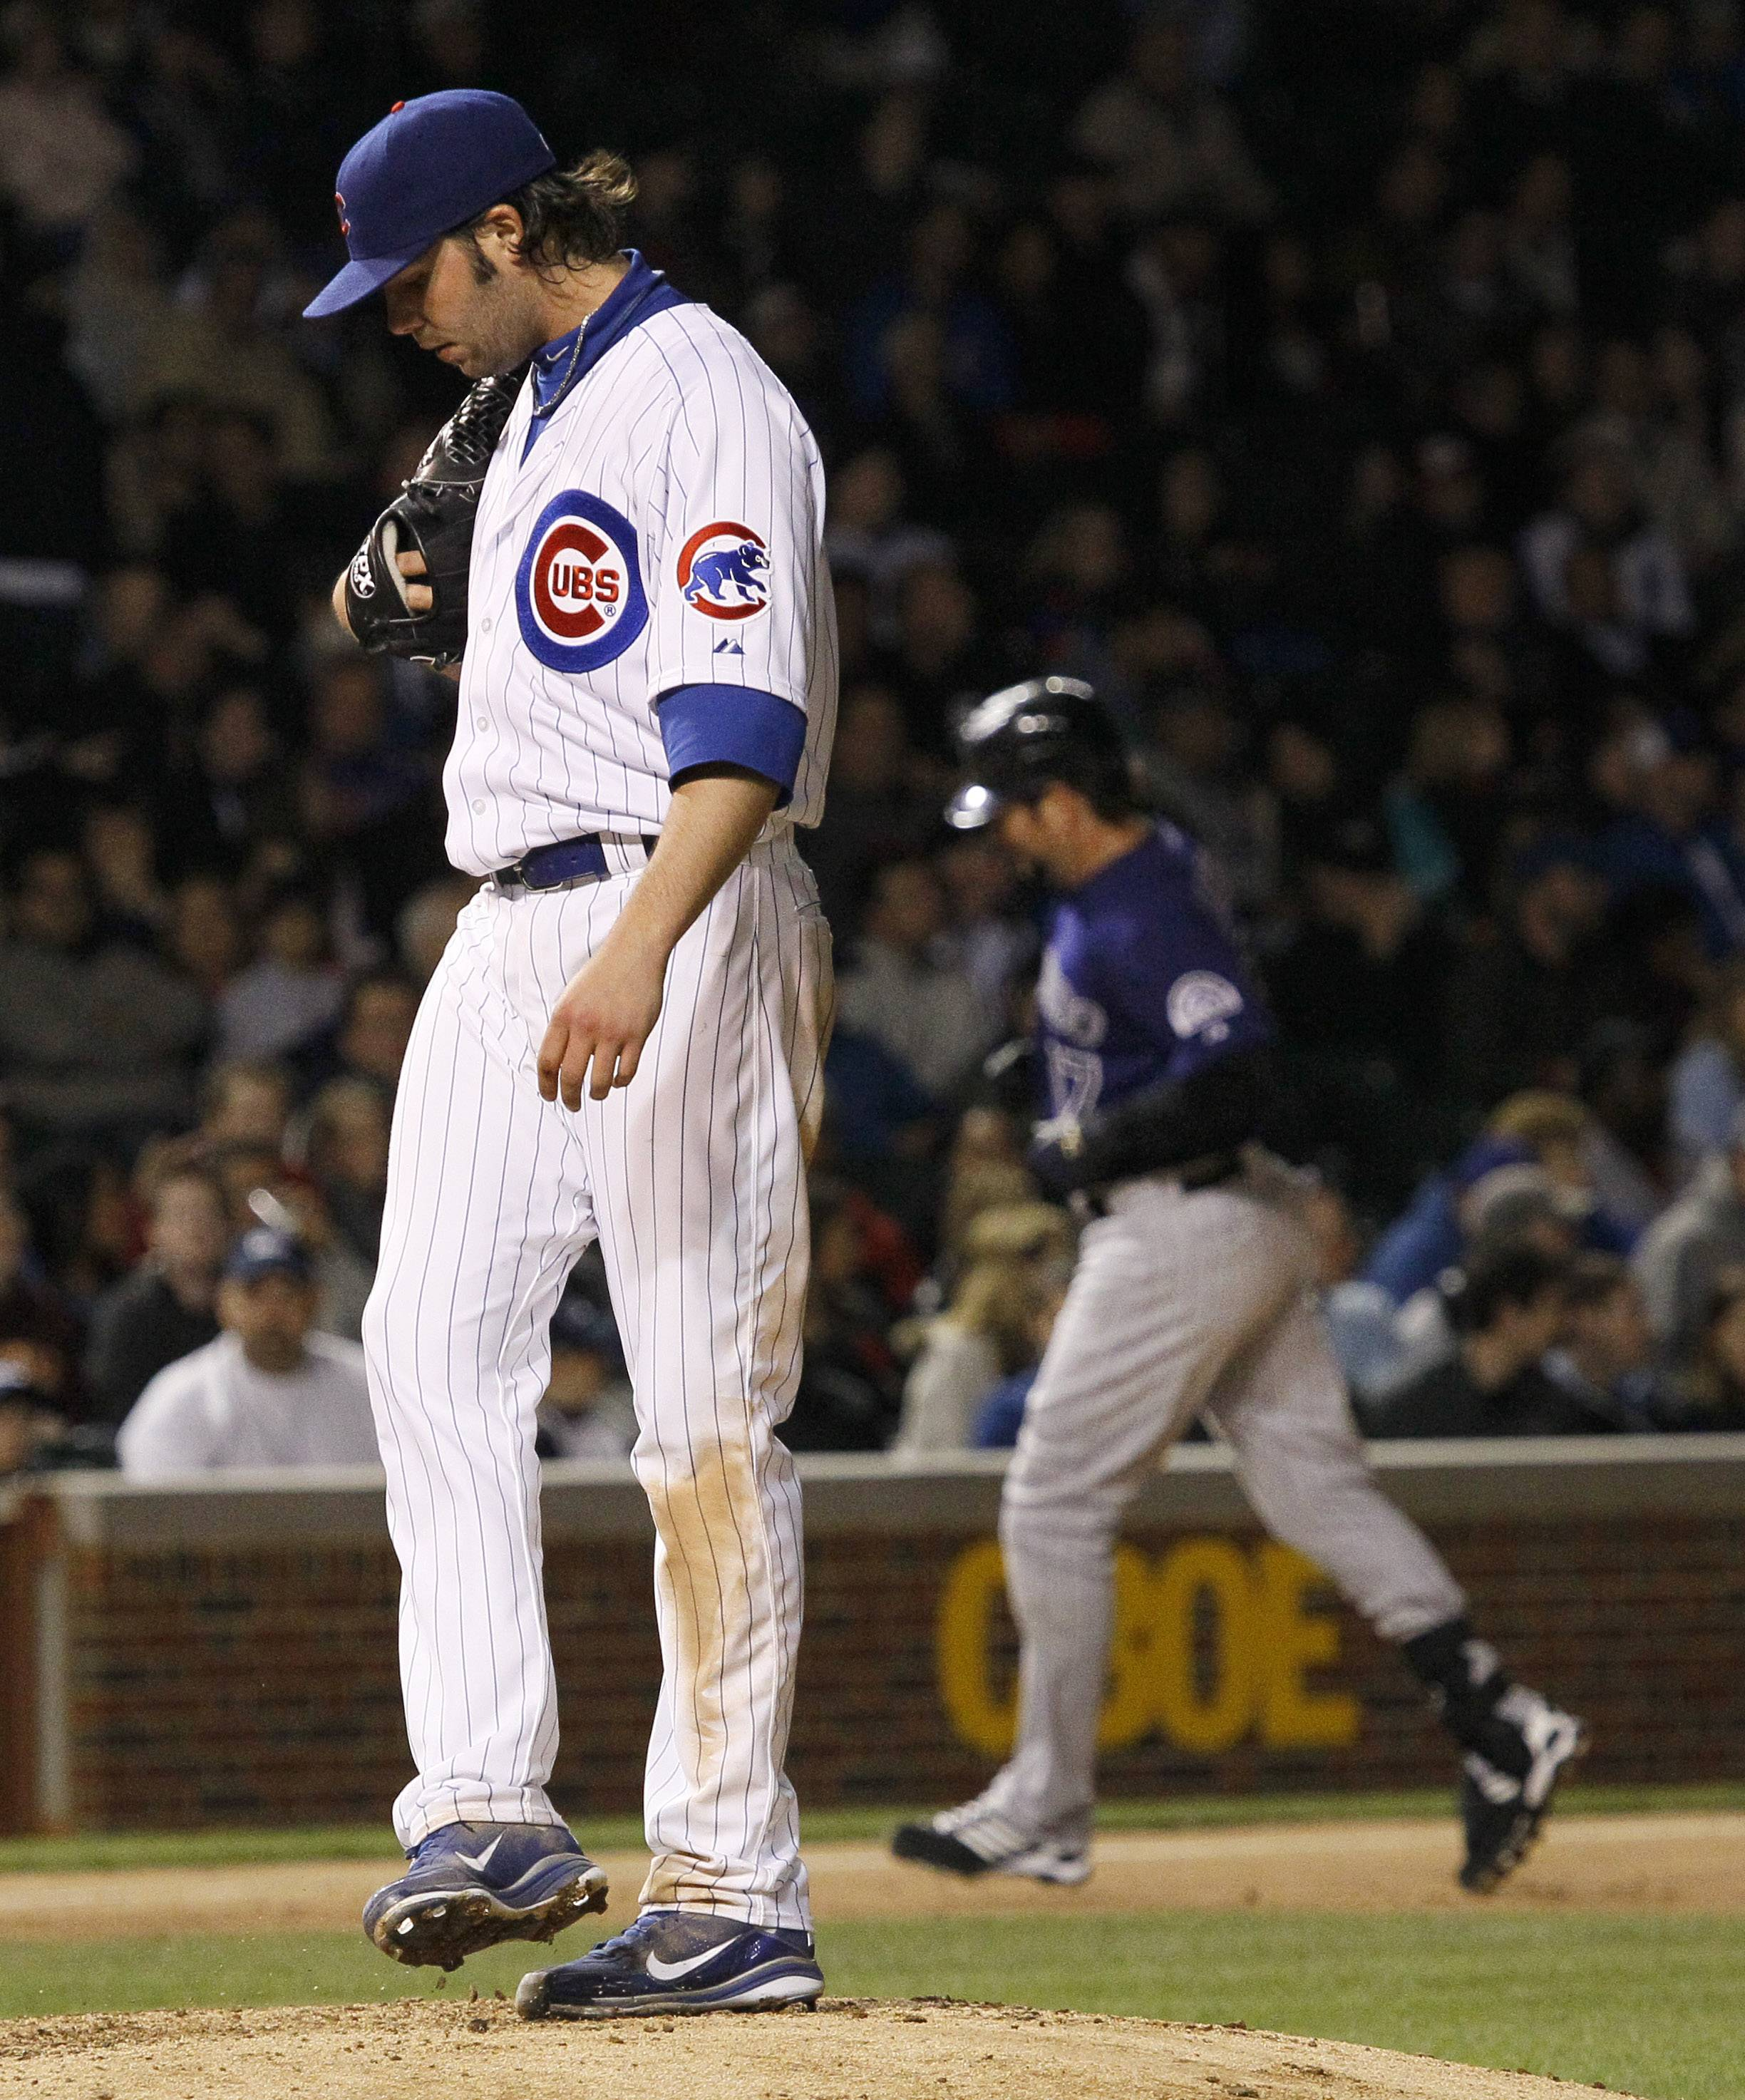 Cubs drop third straight game